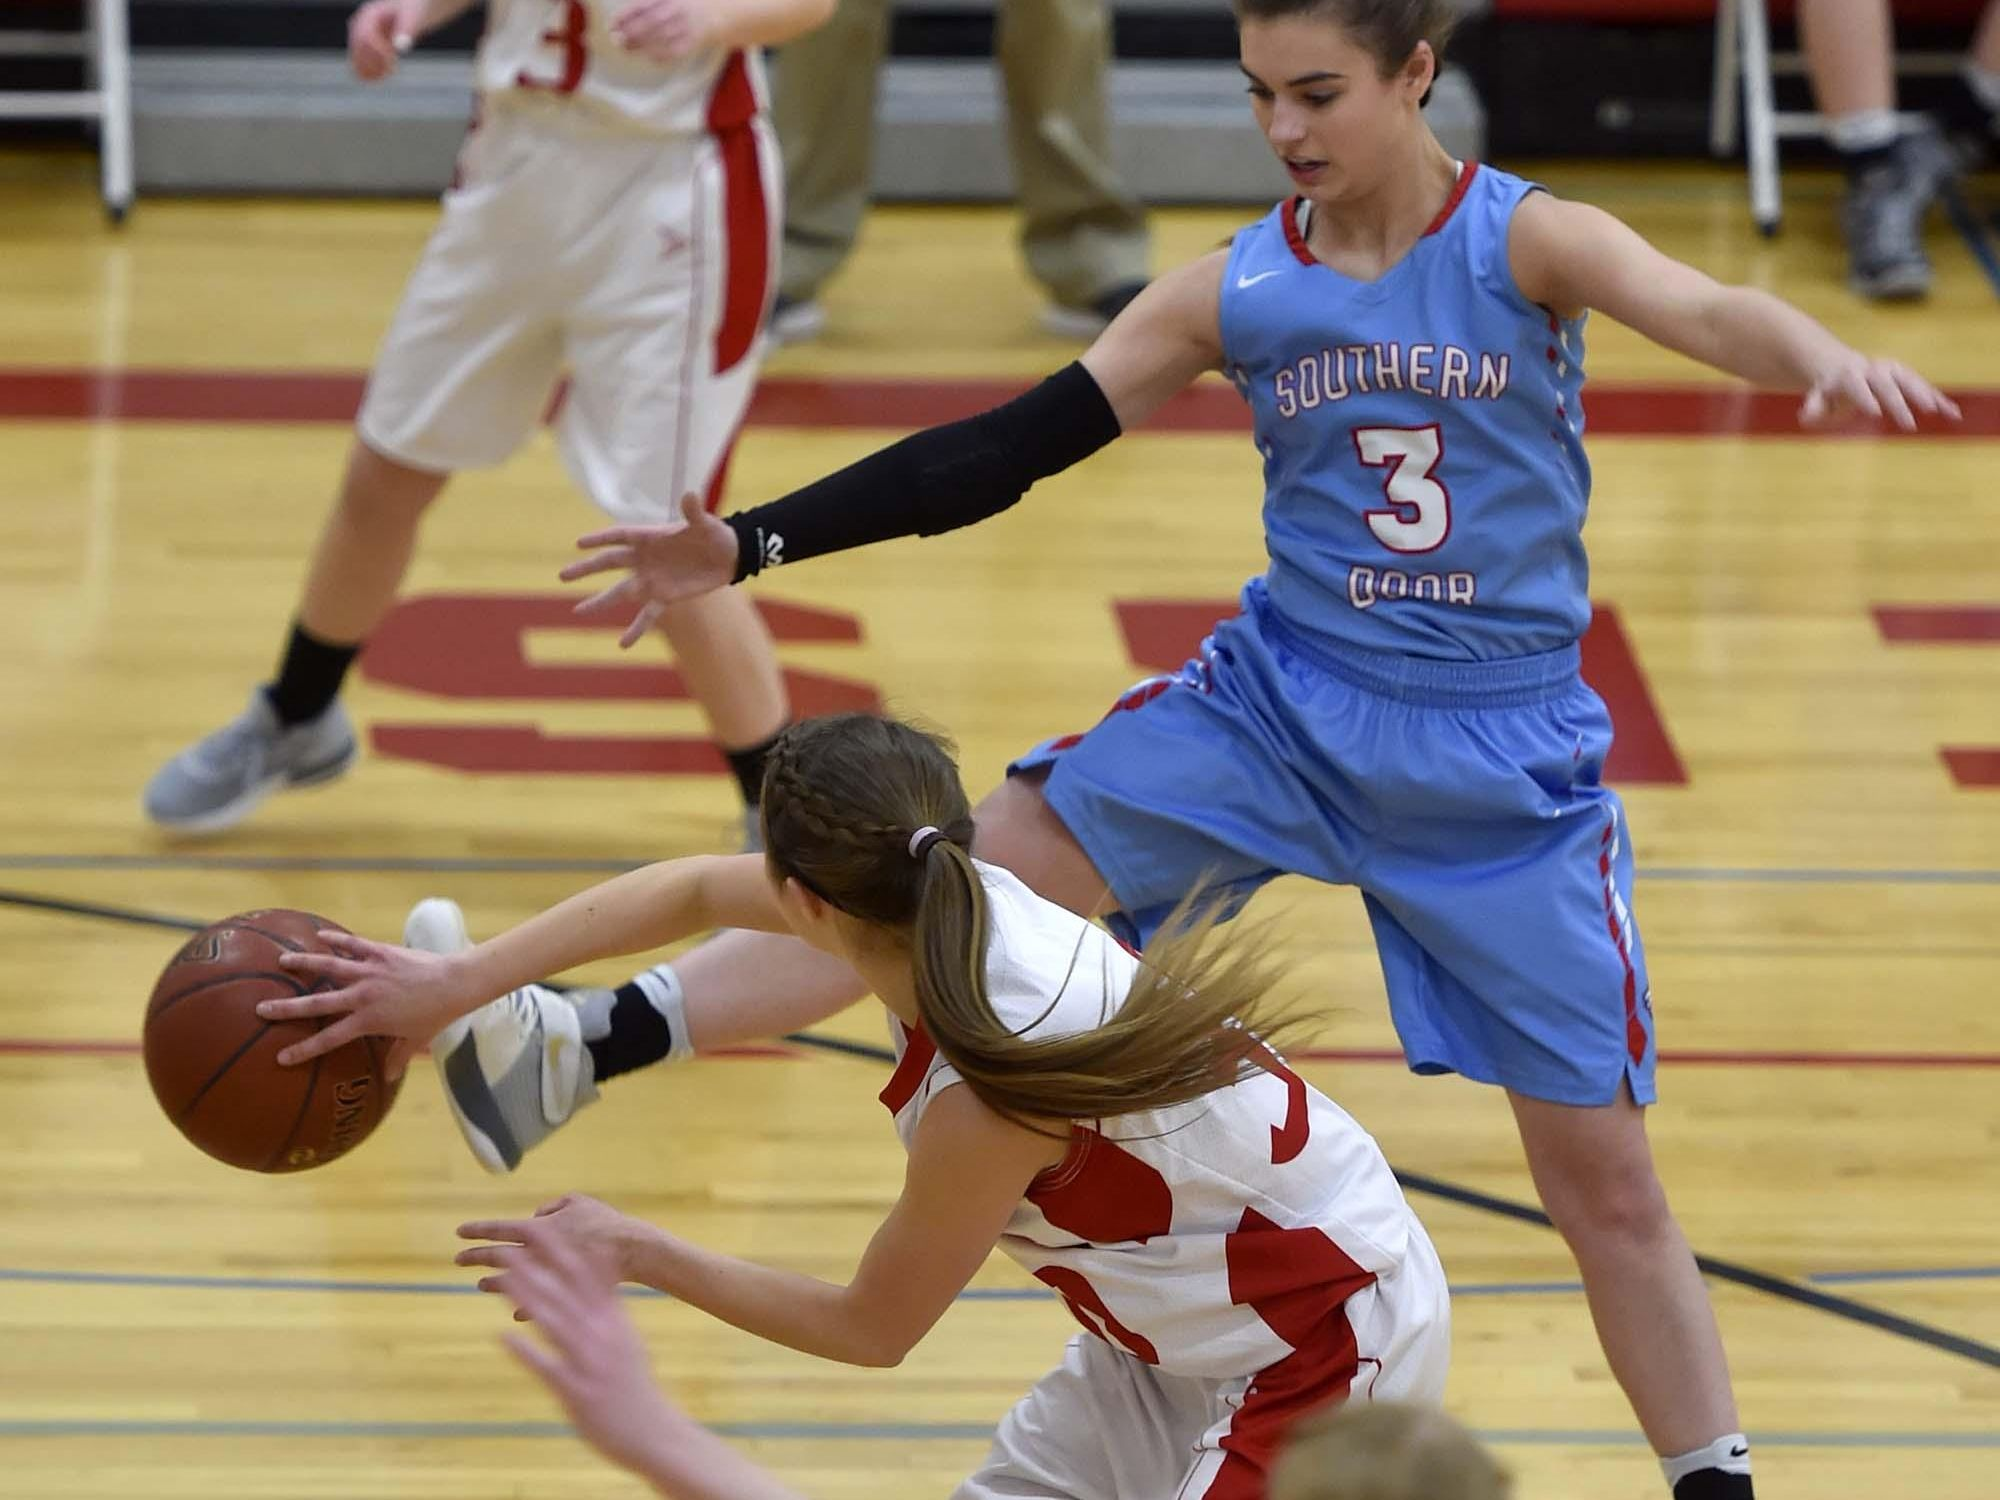 Sturgeon Bay's Allison Alberts passes ball around the outstretched leg of Southern Door's Gabby Atkins, right, to teammate Morgan Nelson during Friday's girls basketball game at Sturgeon Bay.